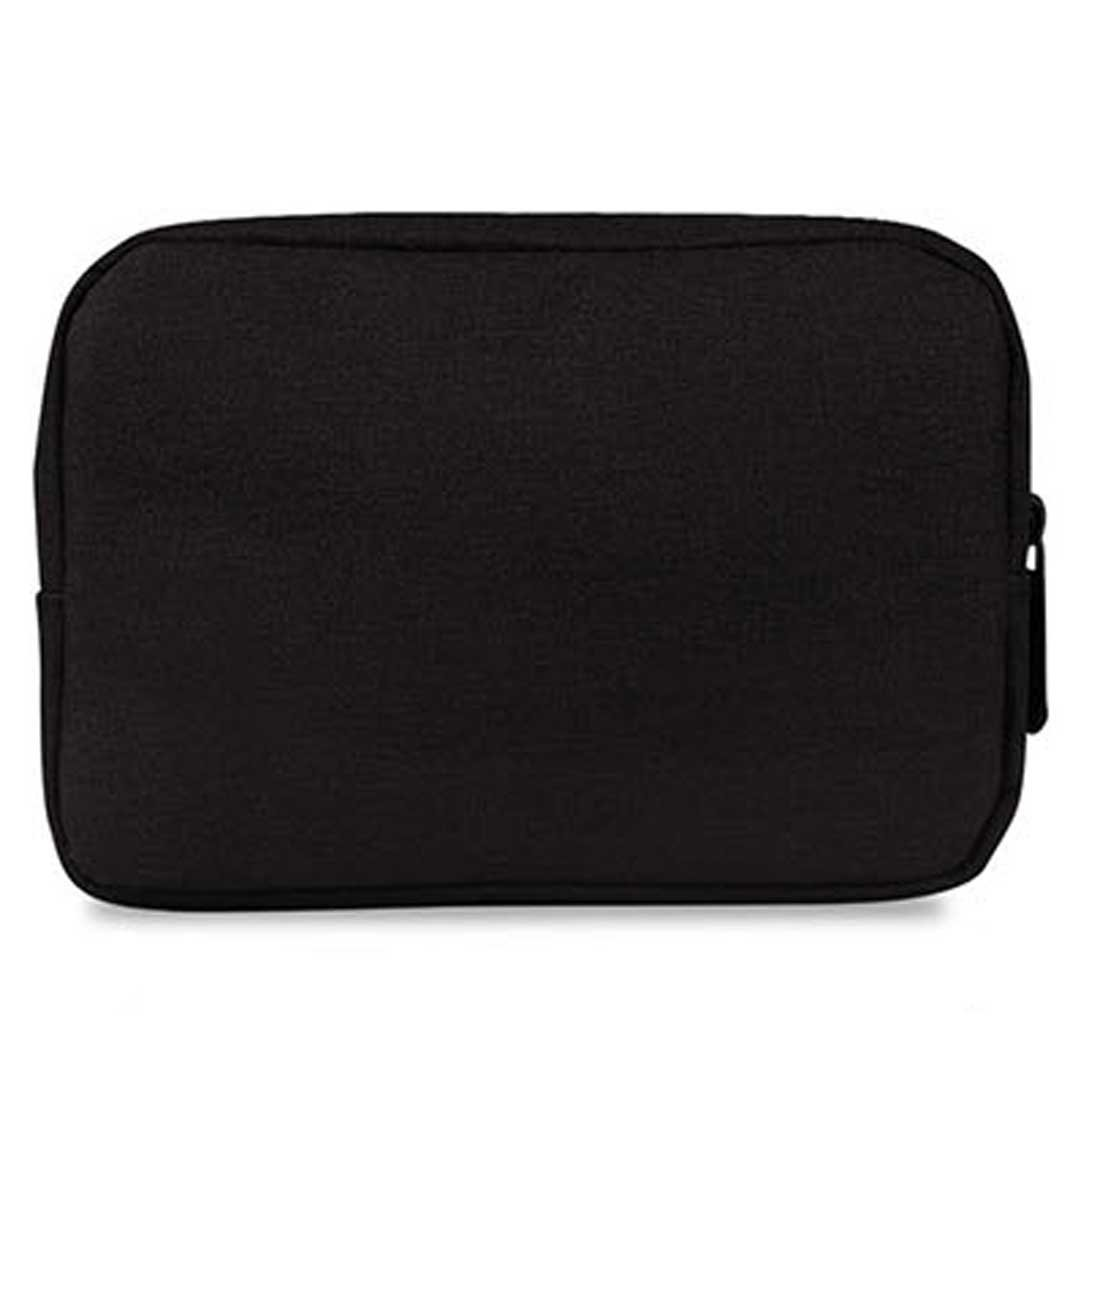 20dac2544122 Buy WOOWAA Daily Makeup Pouch Compact Size(Black) Online at Low Prices in  India - Amazon.in